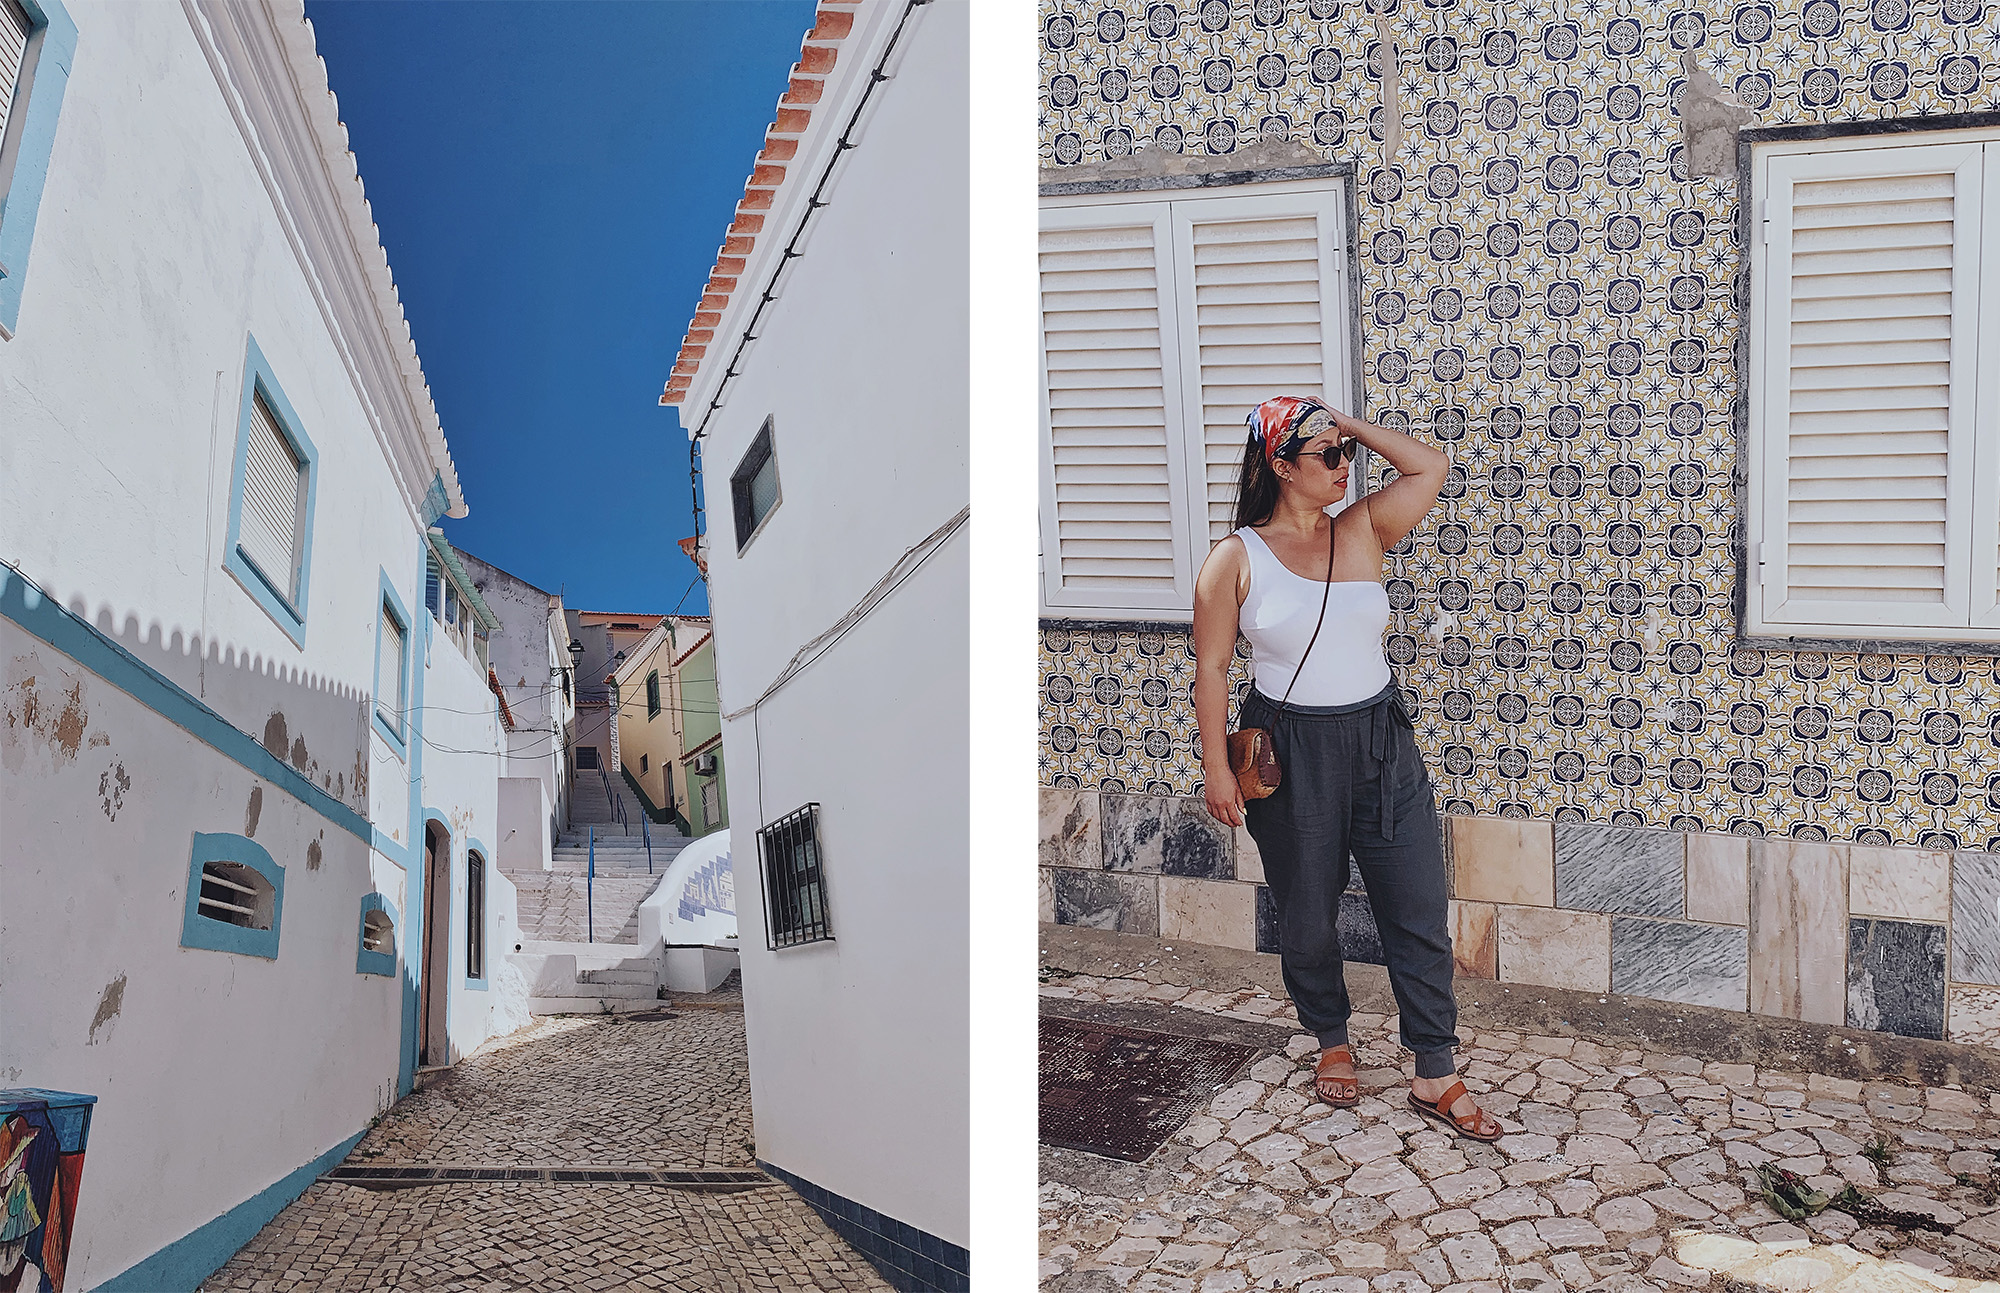 Lagos is a gorgeous coastal town in Portugal's Algarve region known for some of the country's most glorious beaches. Here's a guide to everything you need to know!